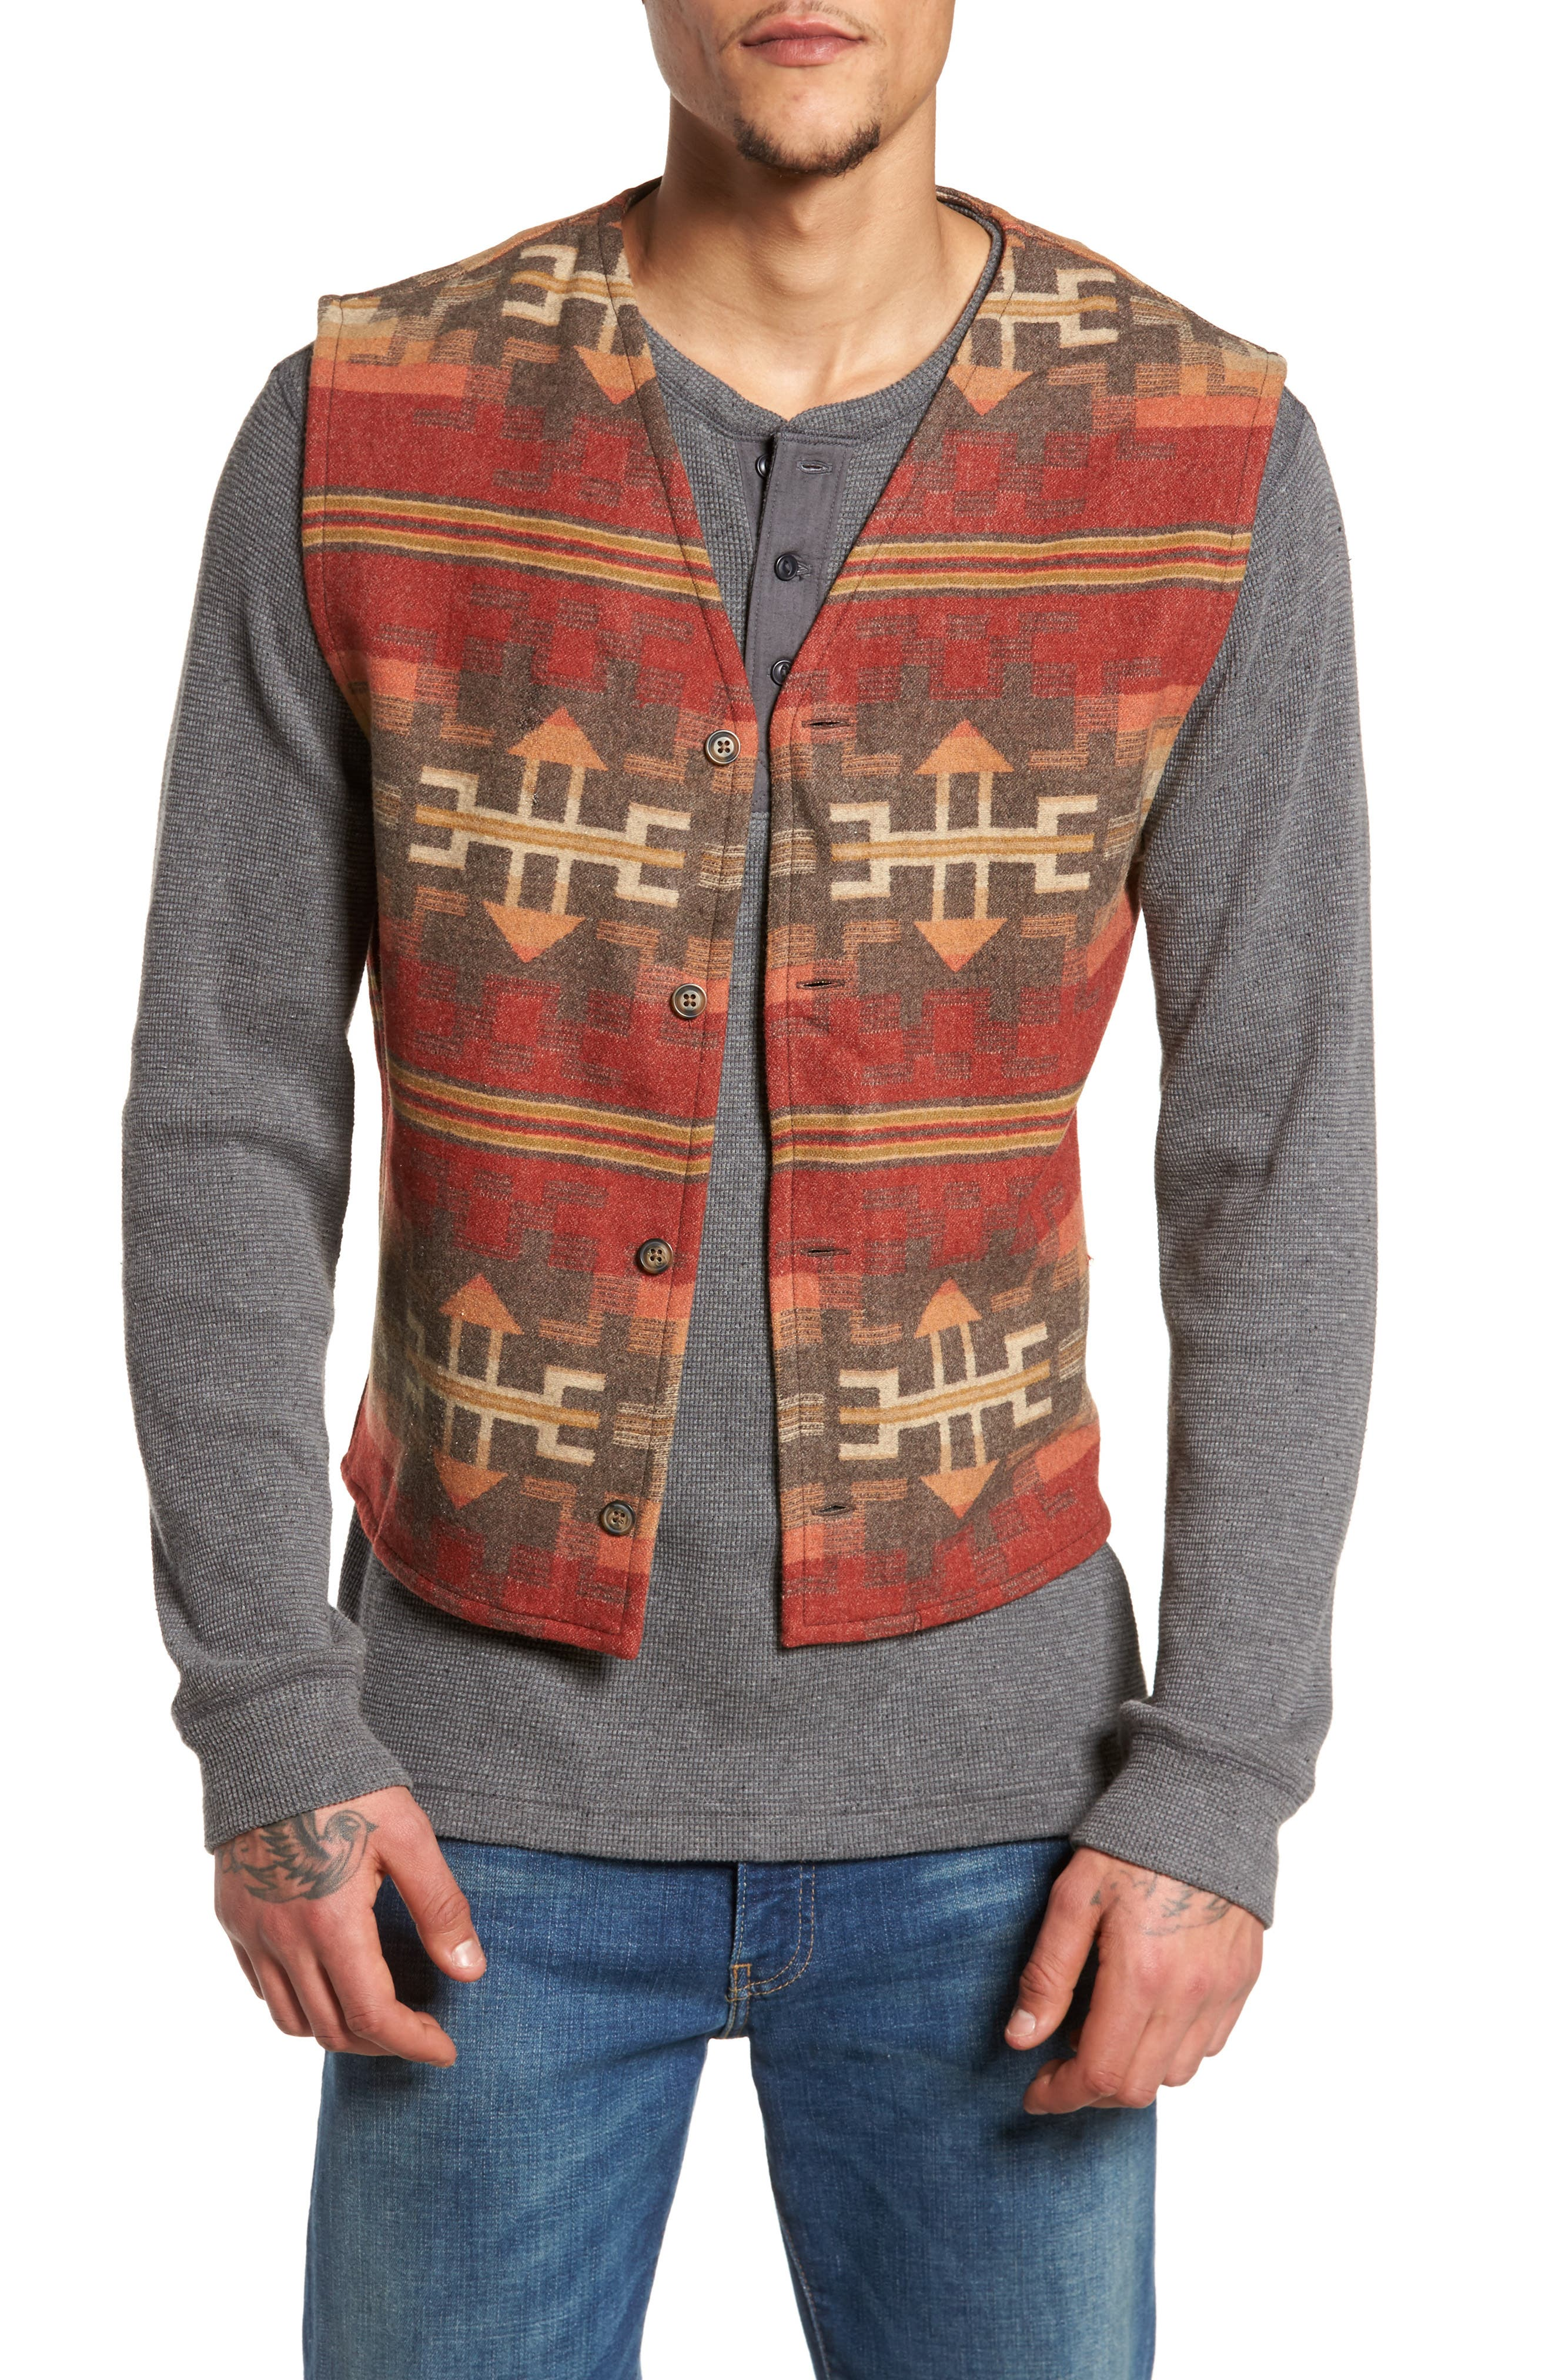 Denim Jacket with Removable Wool Vest,                             Alternate thumbnail 4, color,                             Denim With Broken Arrow Red